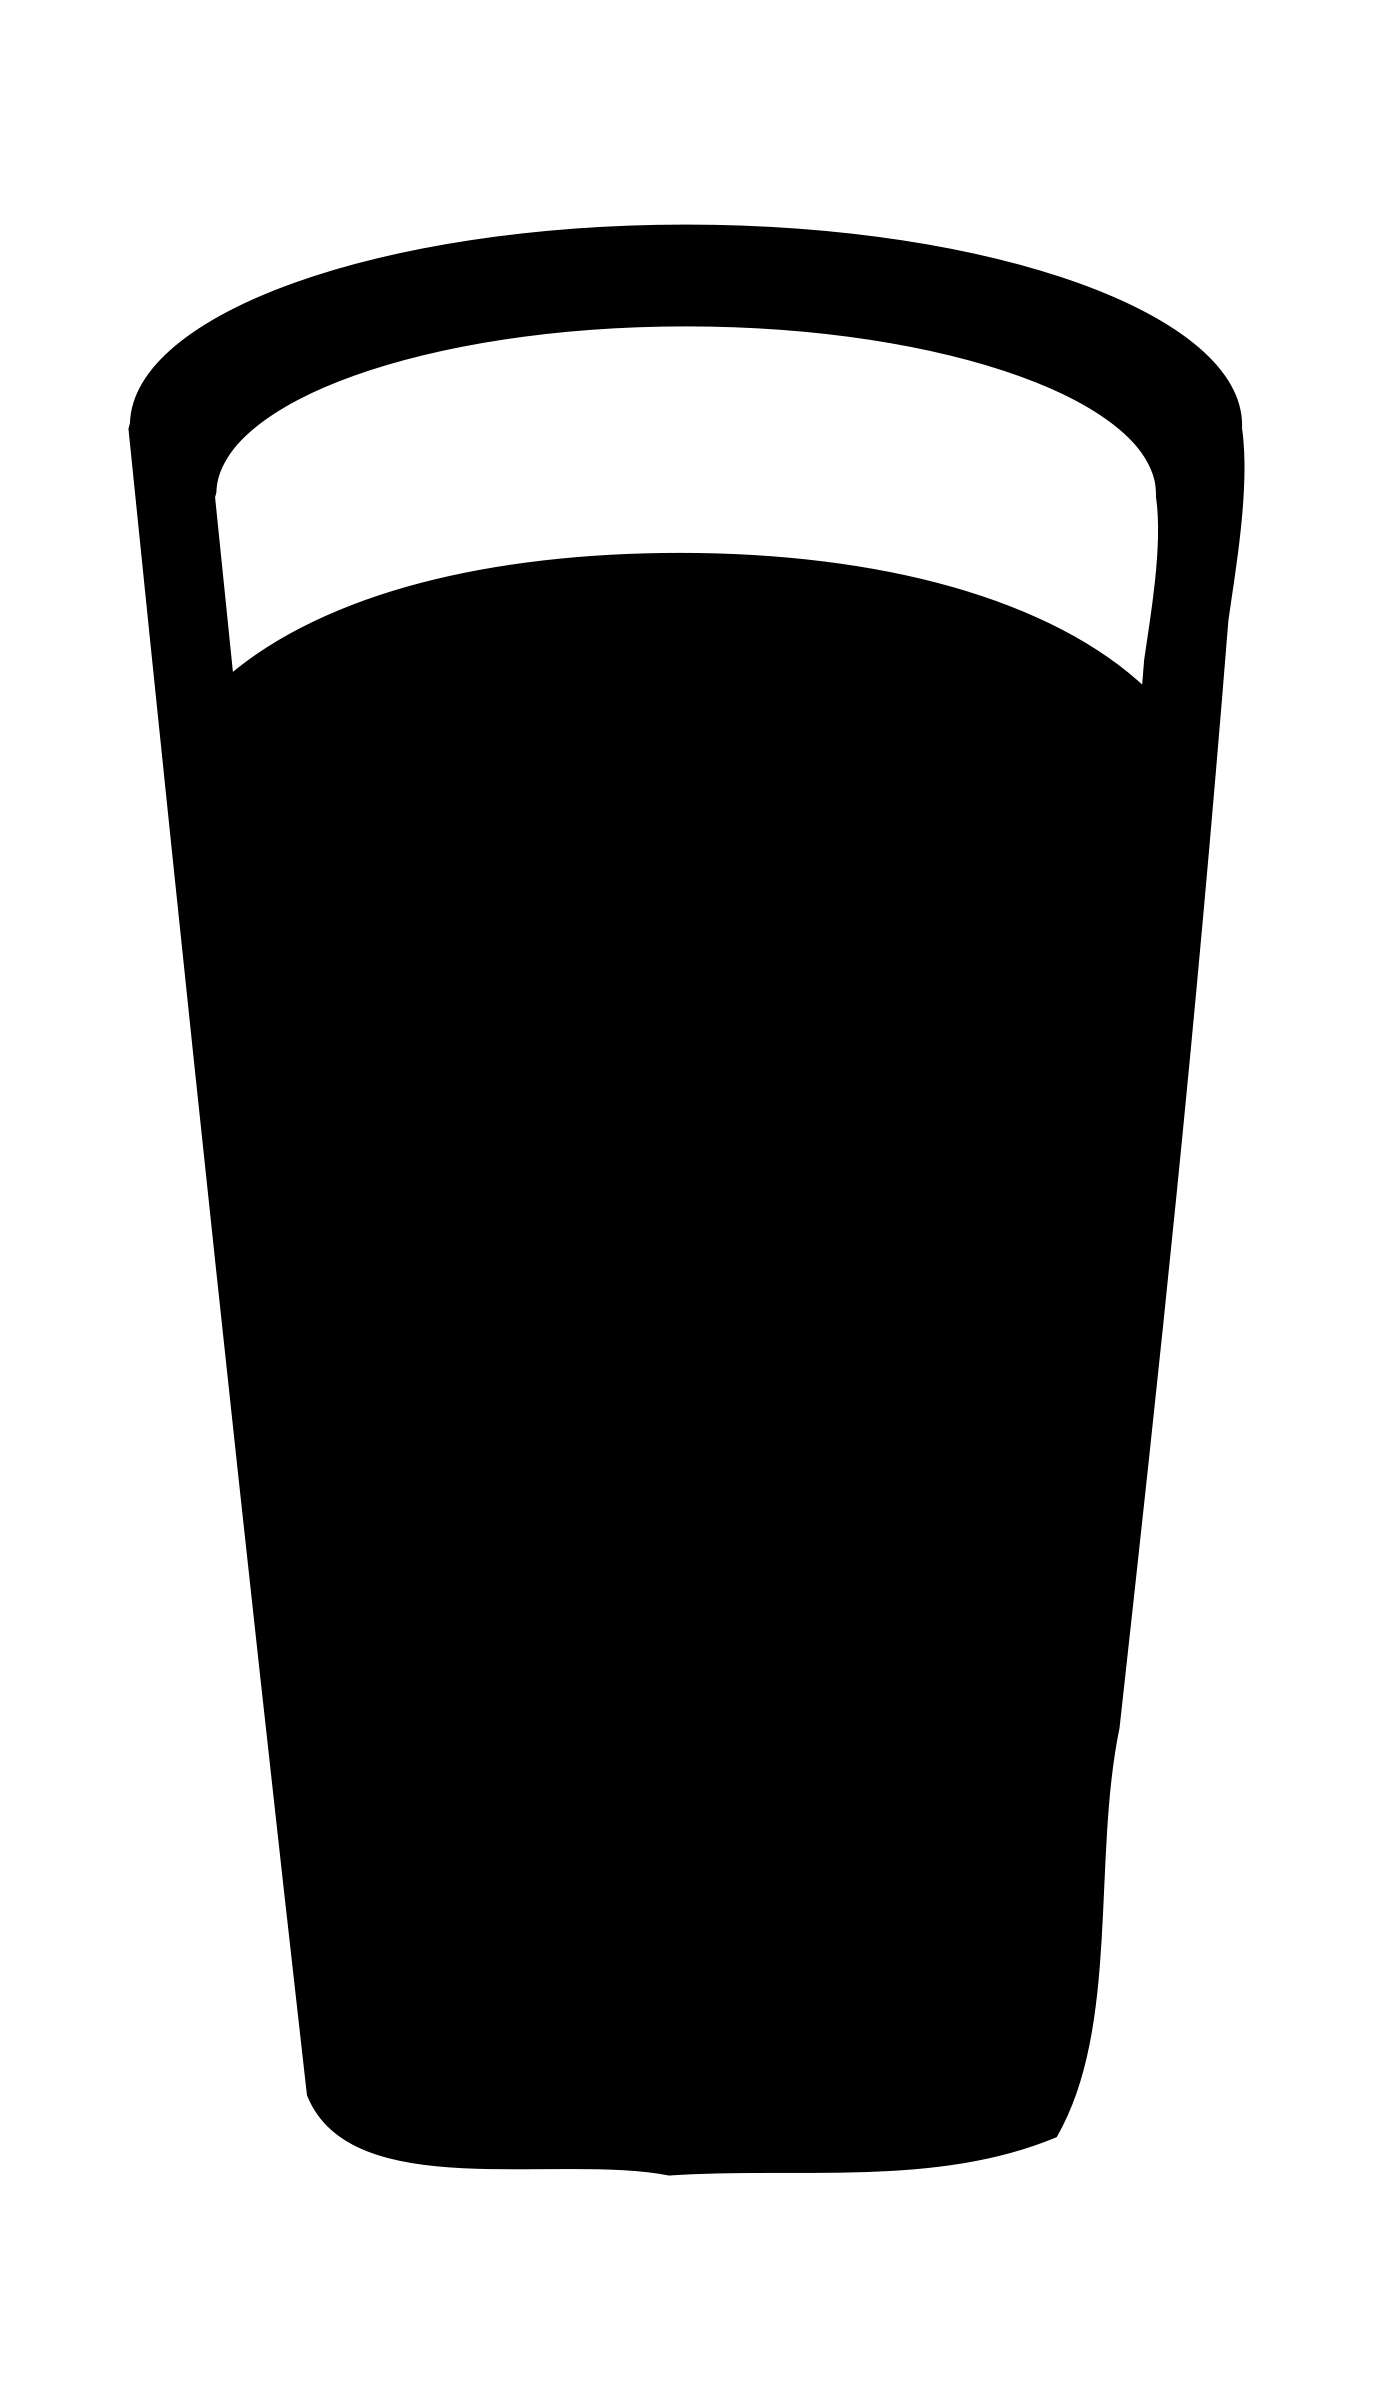 Beer mug silhouette png. Pint glass google search